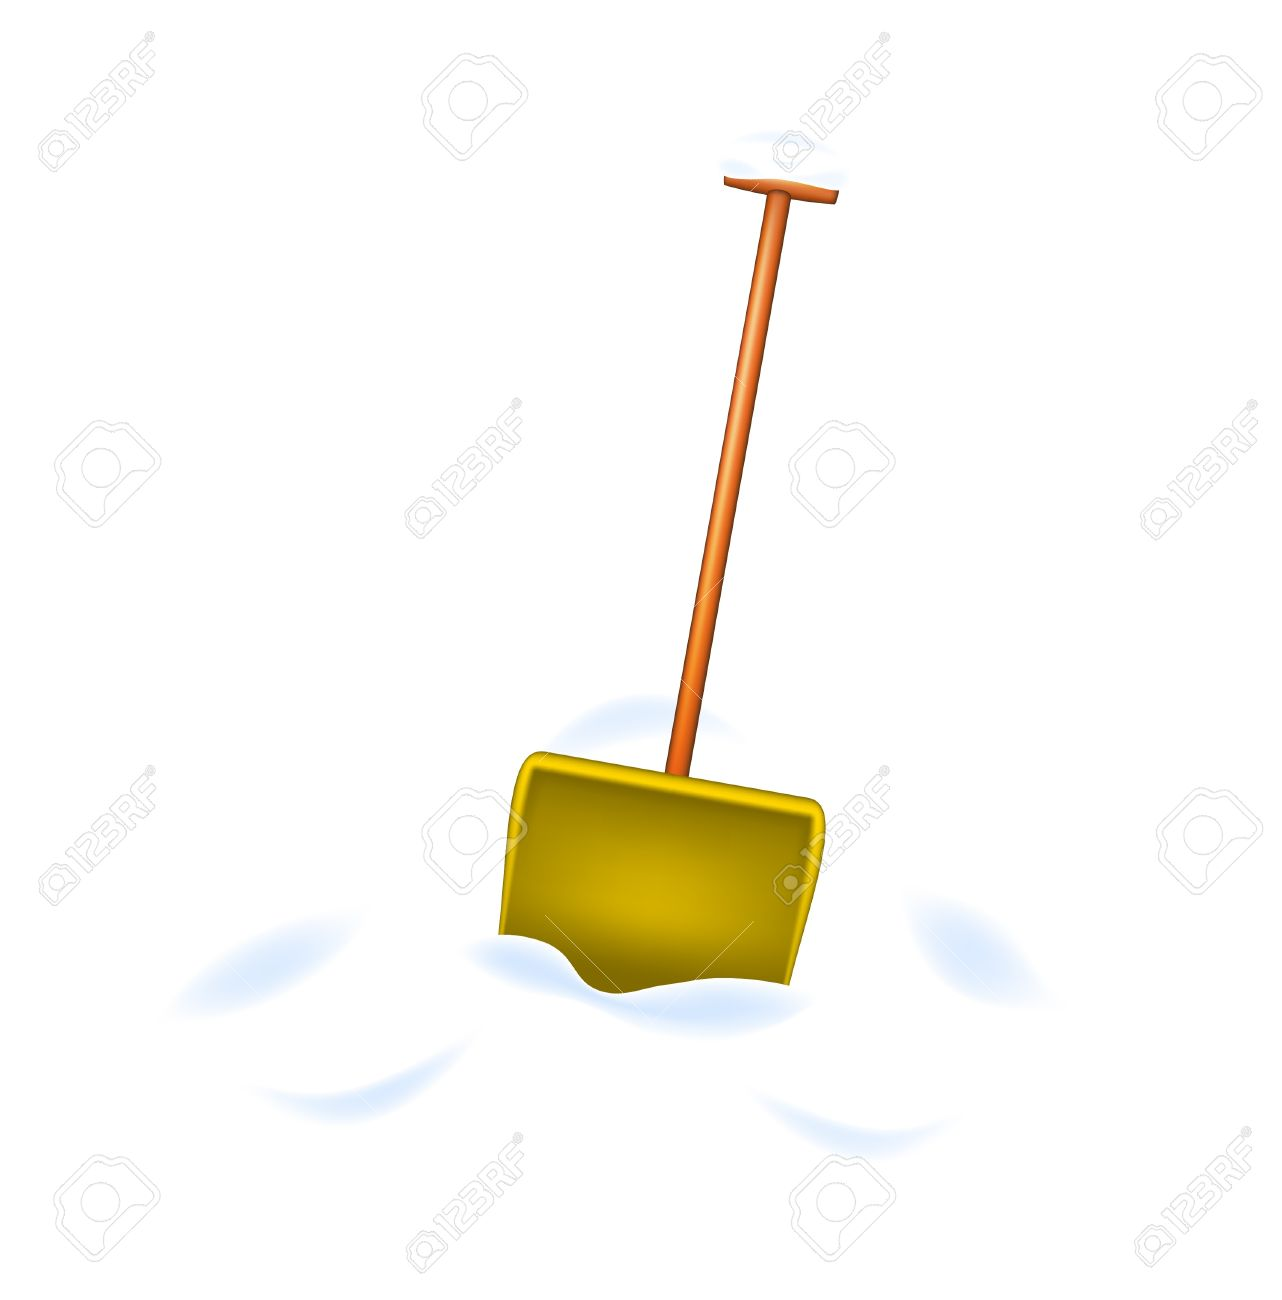 1282x1300 Snow Clipart Snow Pile